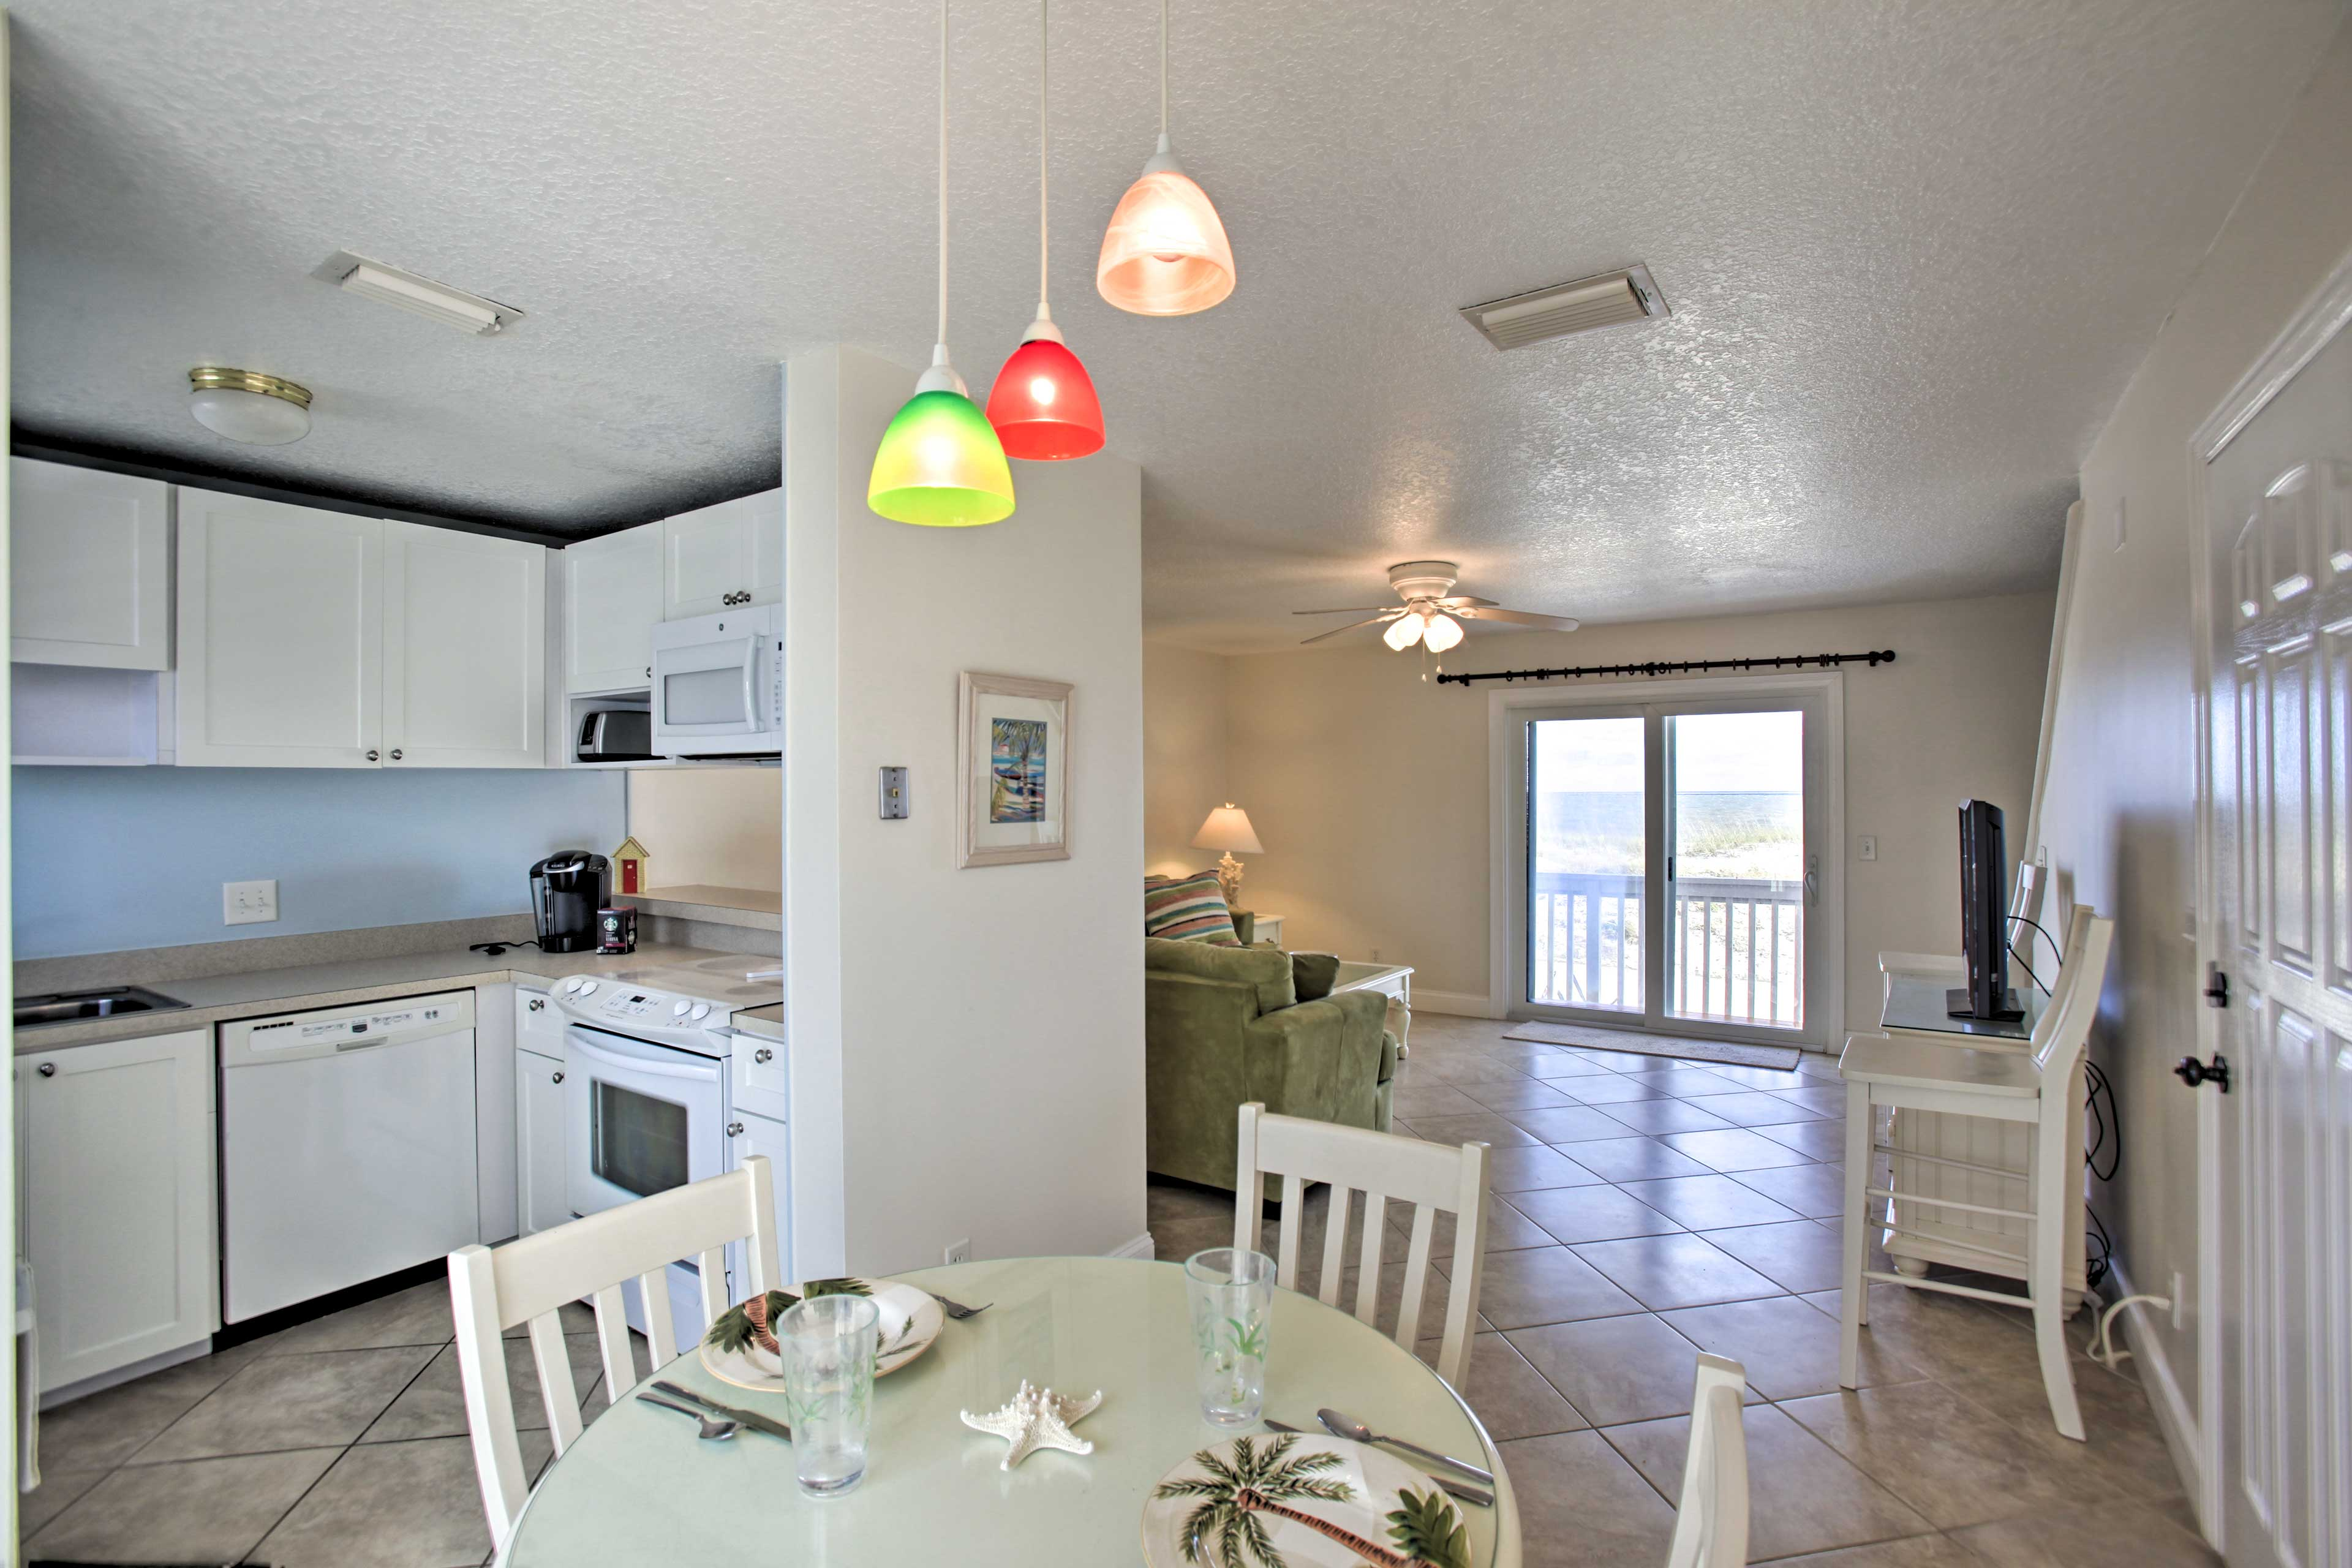 The open floor plan makes it easy to socialize with your loved ones.